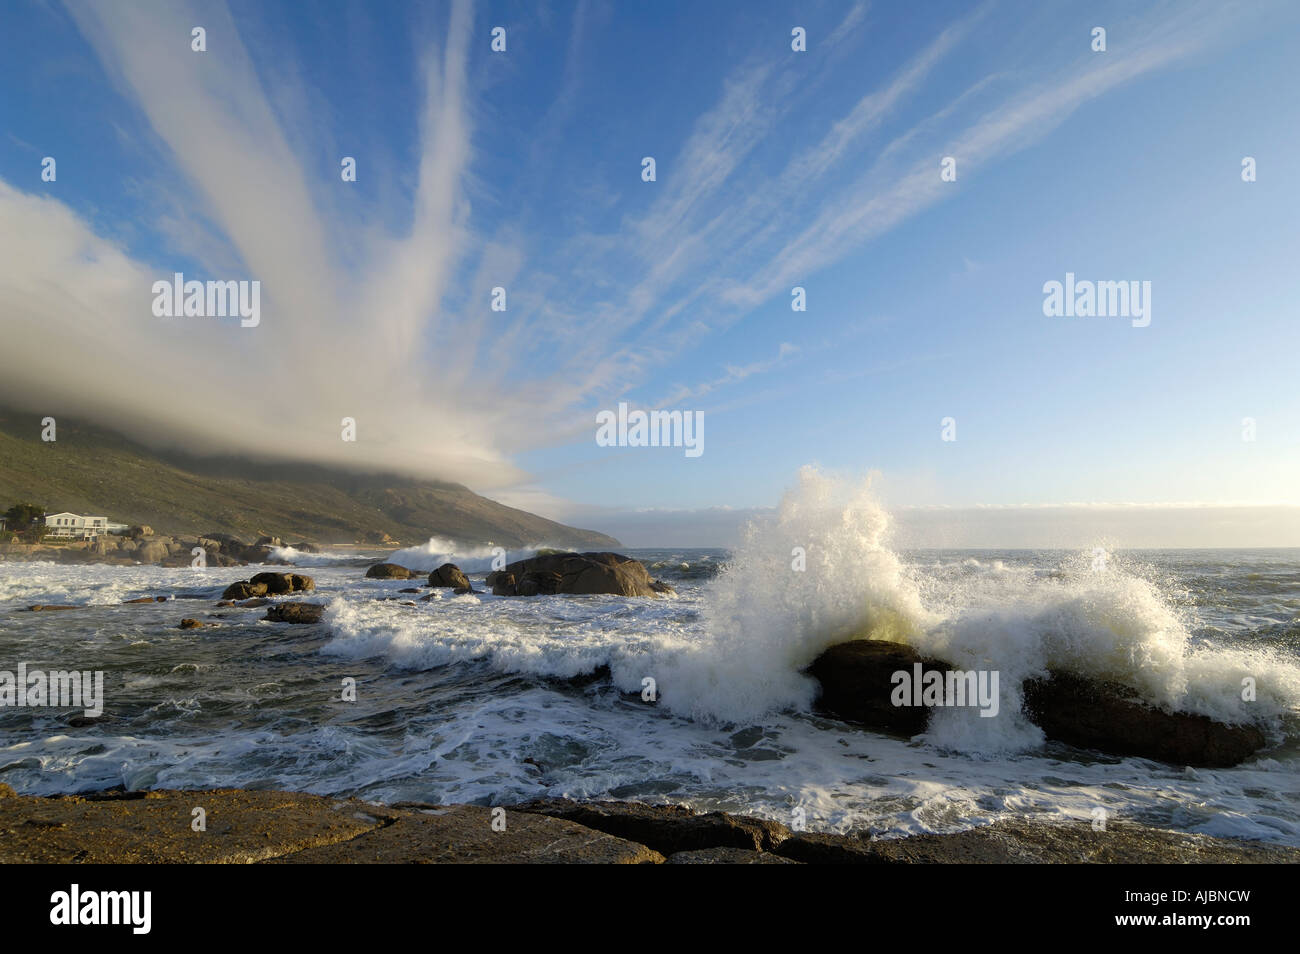 Strange Cloud Formations Emanate from the Table Cloth on the Twelve Apostles over the Bakoven Shoreline - Stock Image